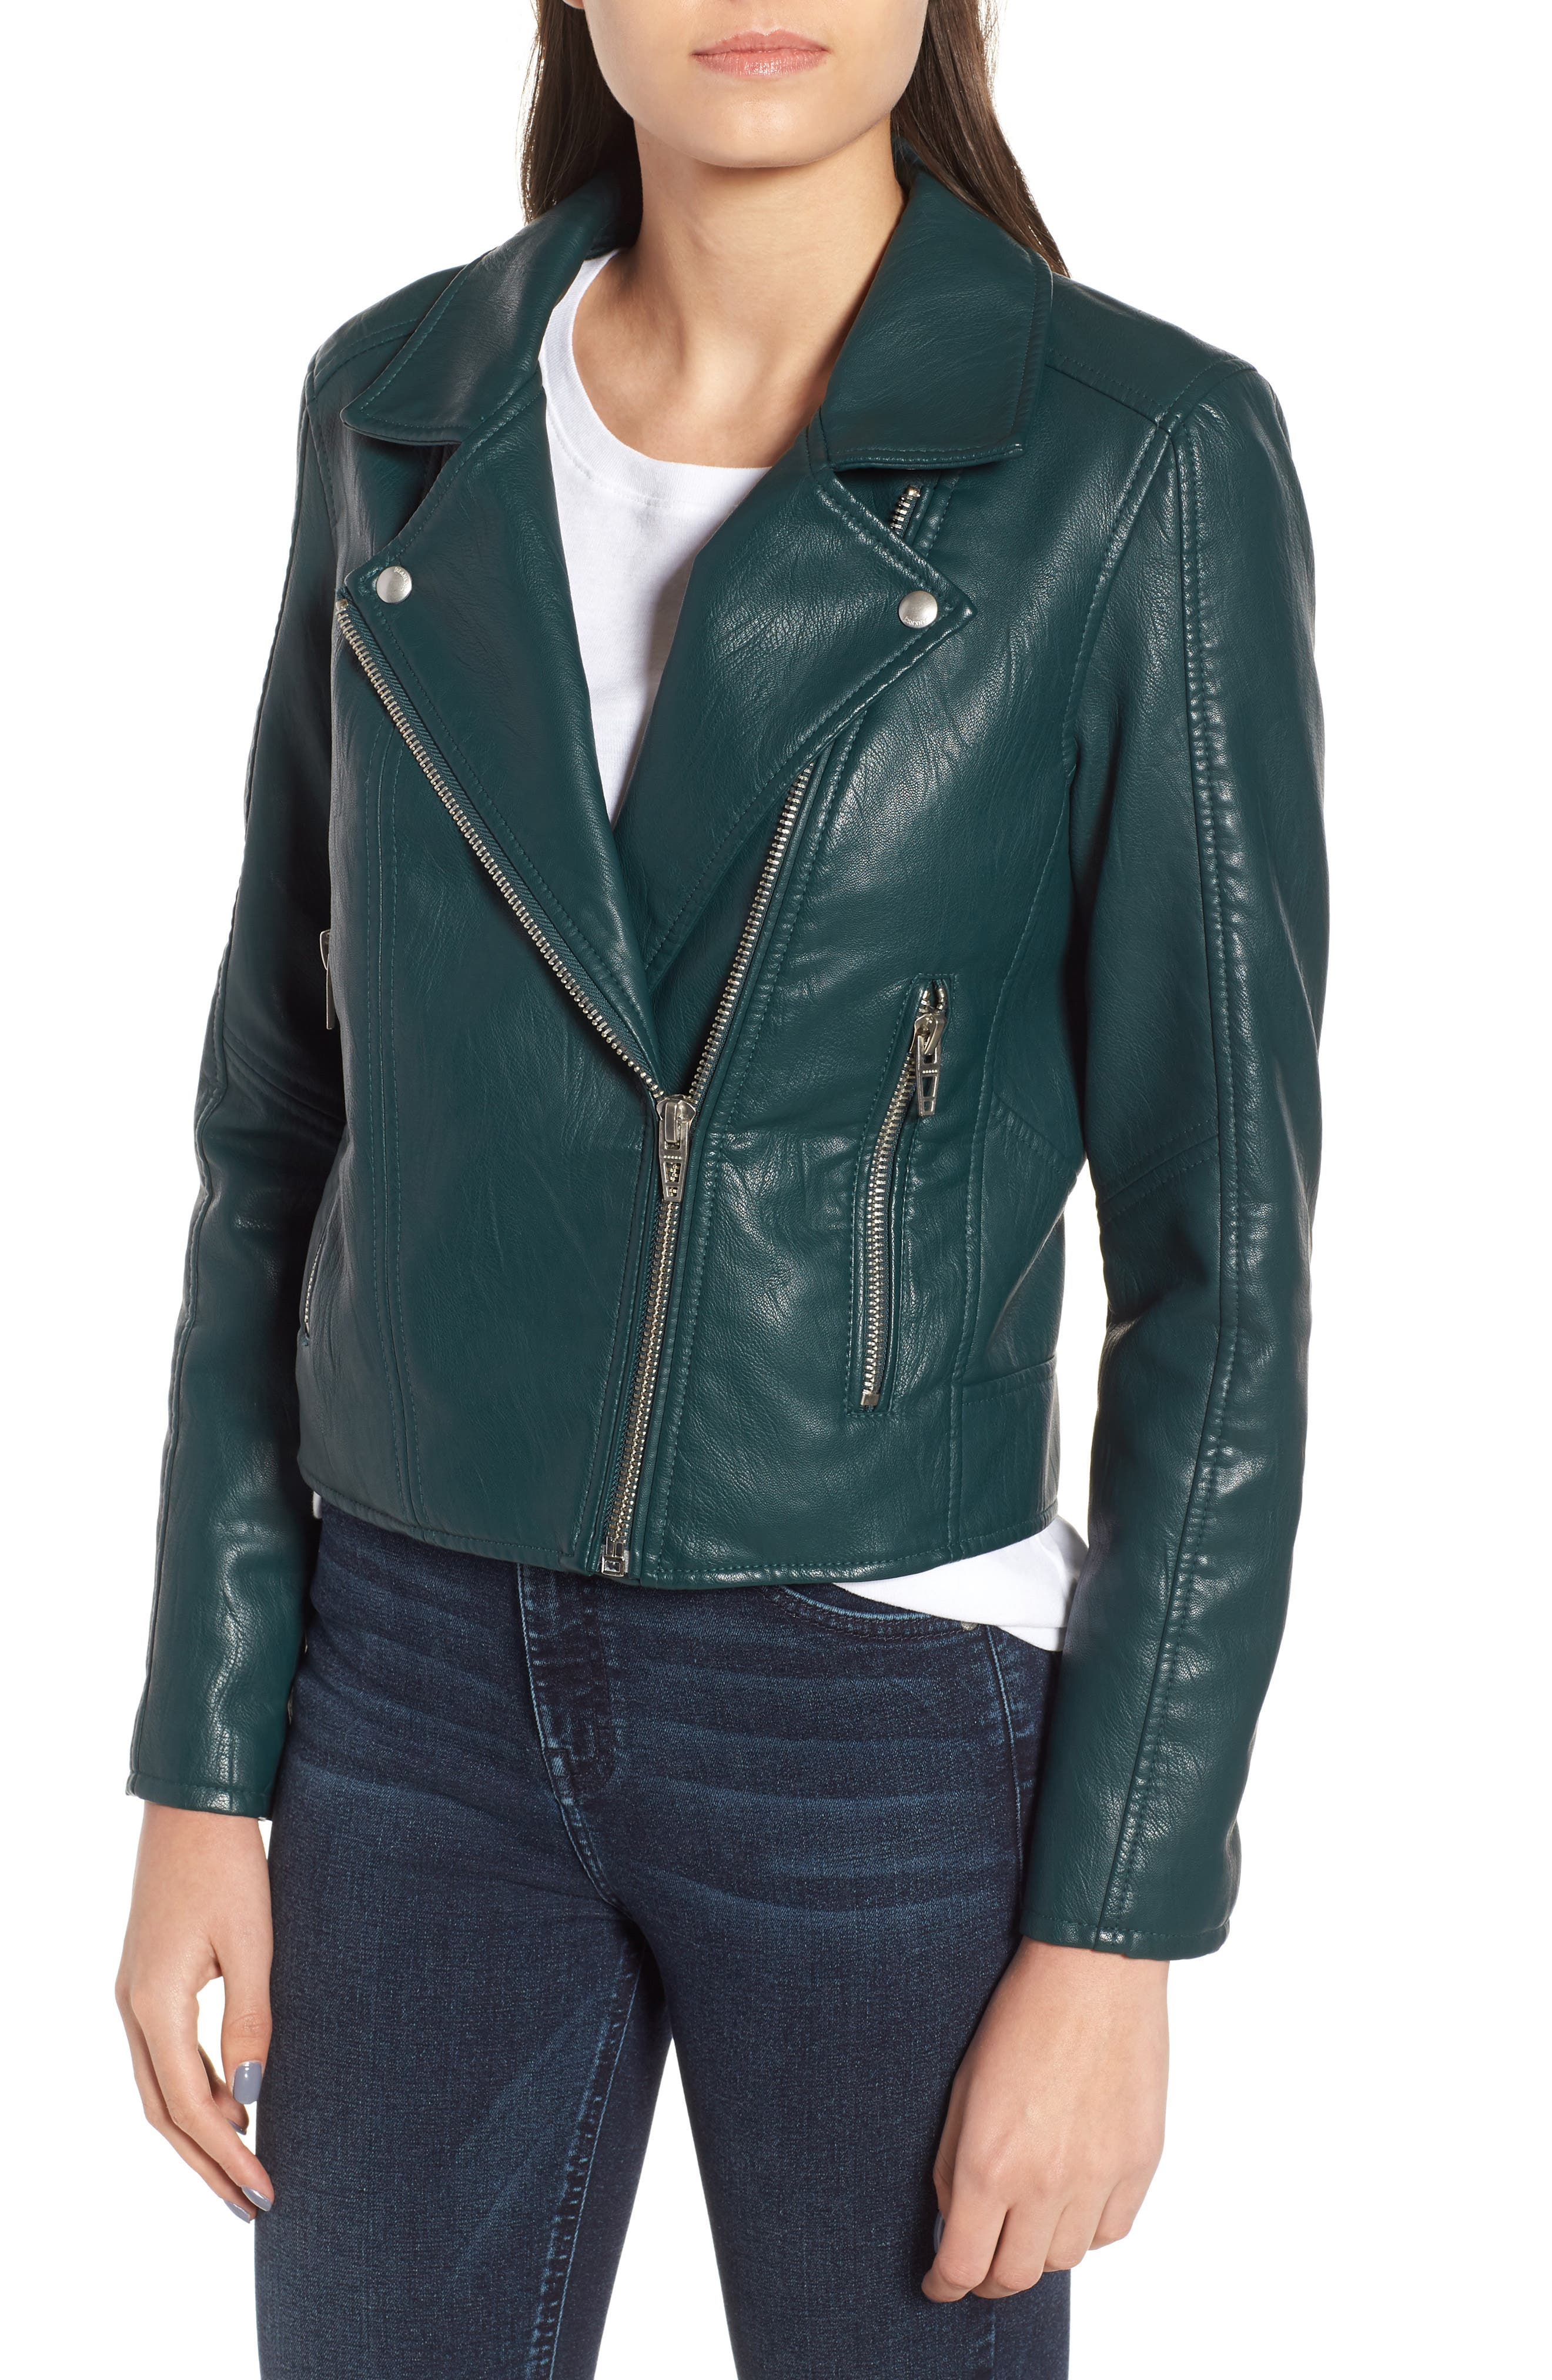 BLANKNYC, Meant to Be Moto Jacket with Removable Hood, Alternate thumbnail 5, color, EVERGREEN